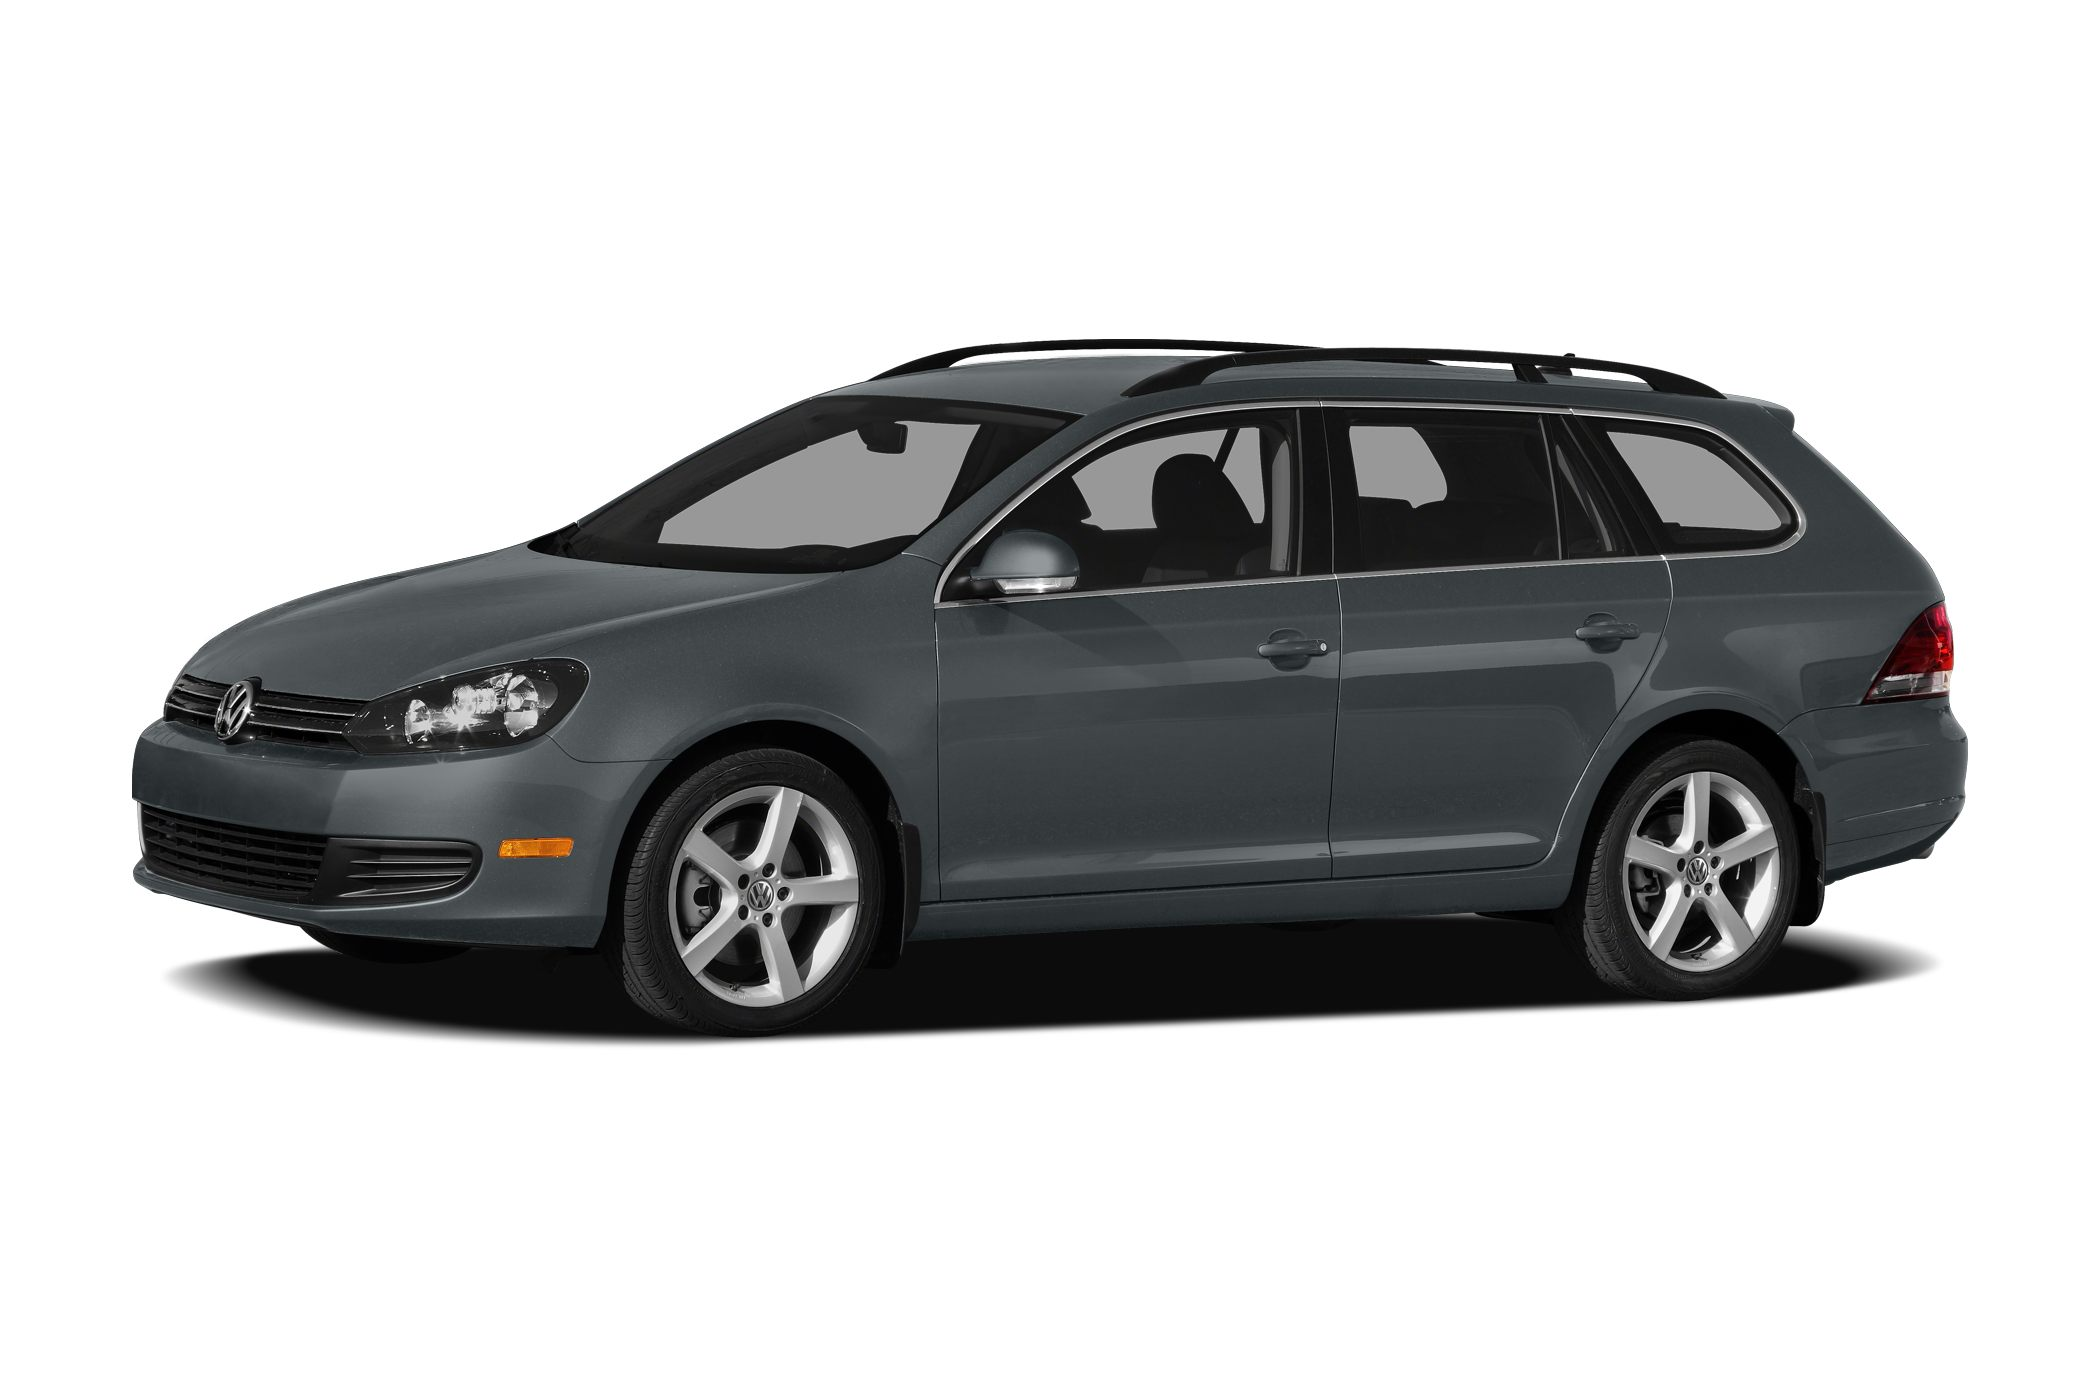 2012 Volkswagen Jetta SportWagen TDI Wagon for sale in Hawthorne for $20,995 with 46,264 miles.